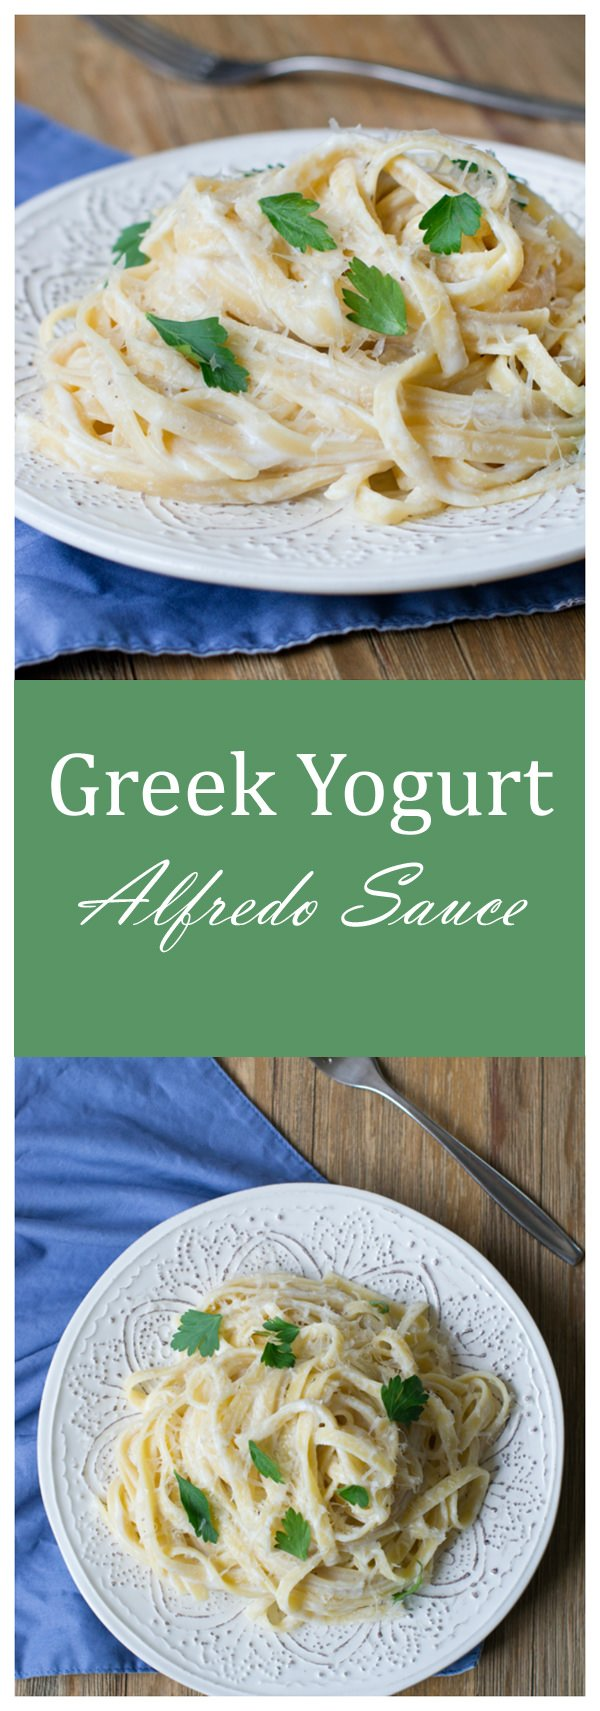 Greek Yogurt Alfredo Sauce